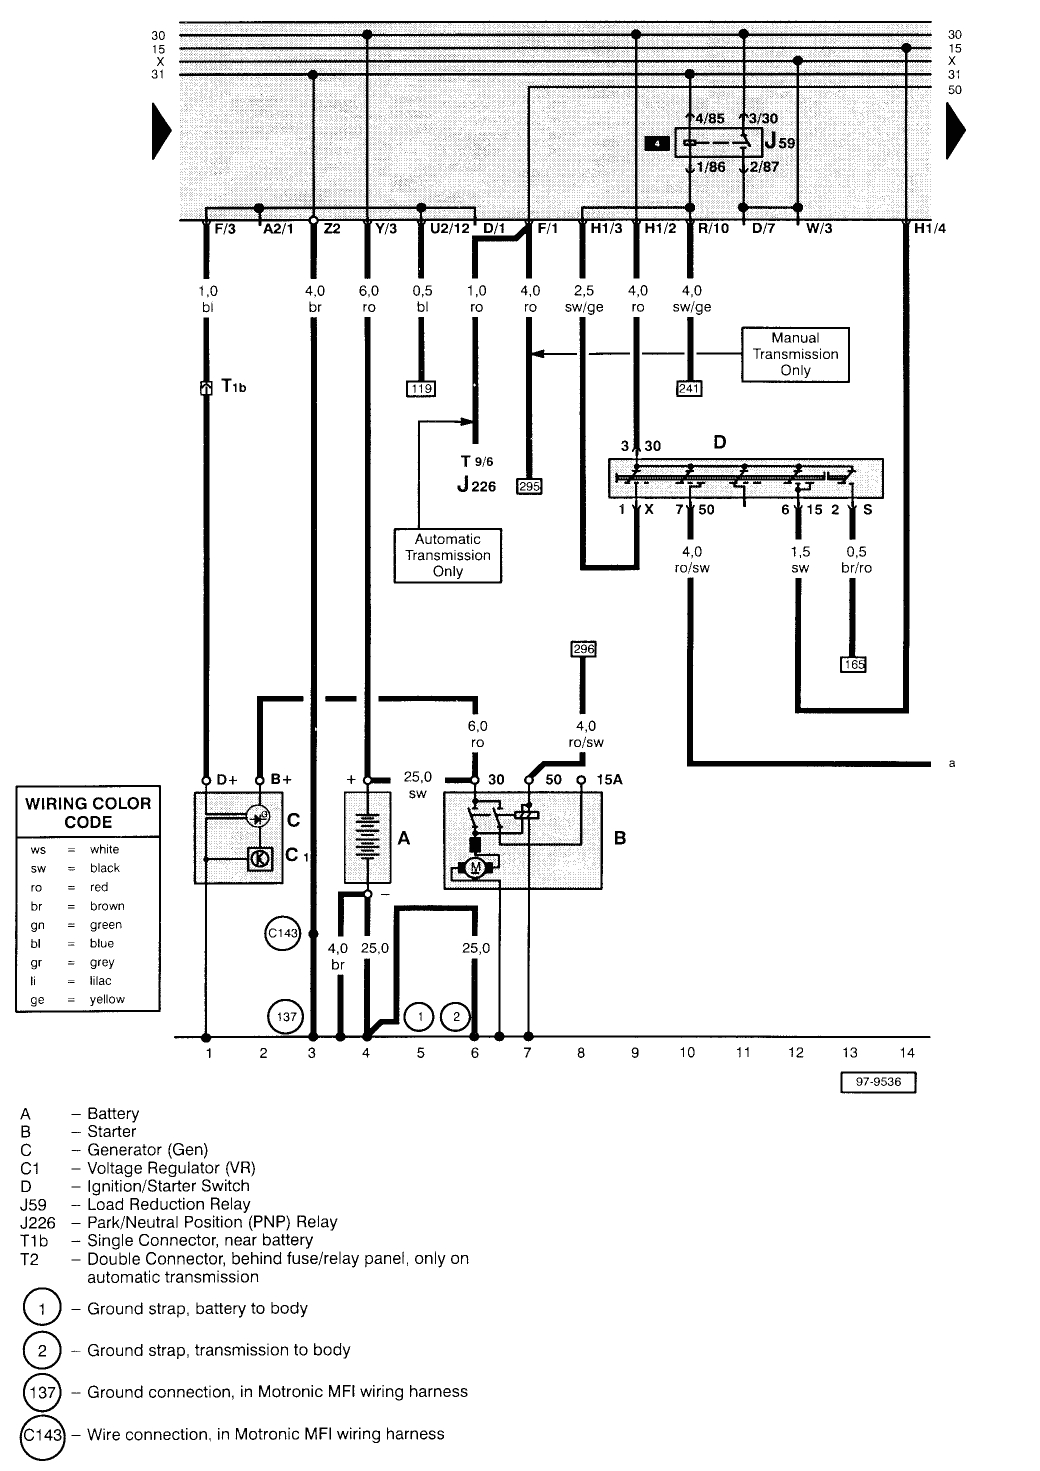 1997 vw jetta wiring diagram wiring diagram database mix i replaced the clutch in my 98